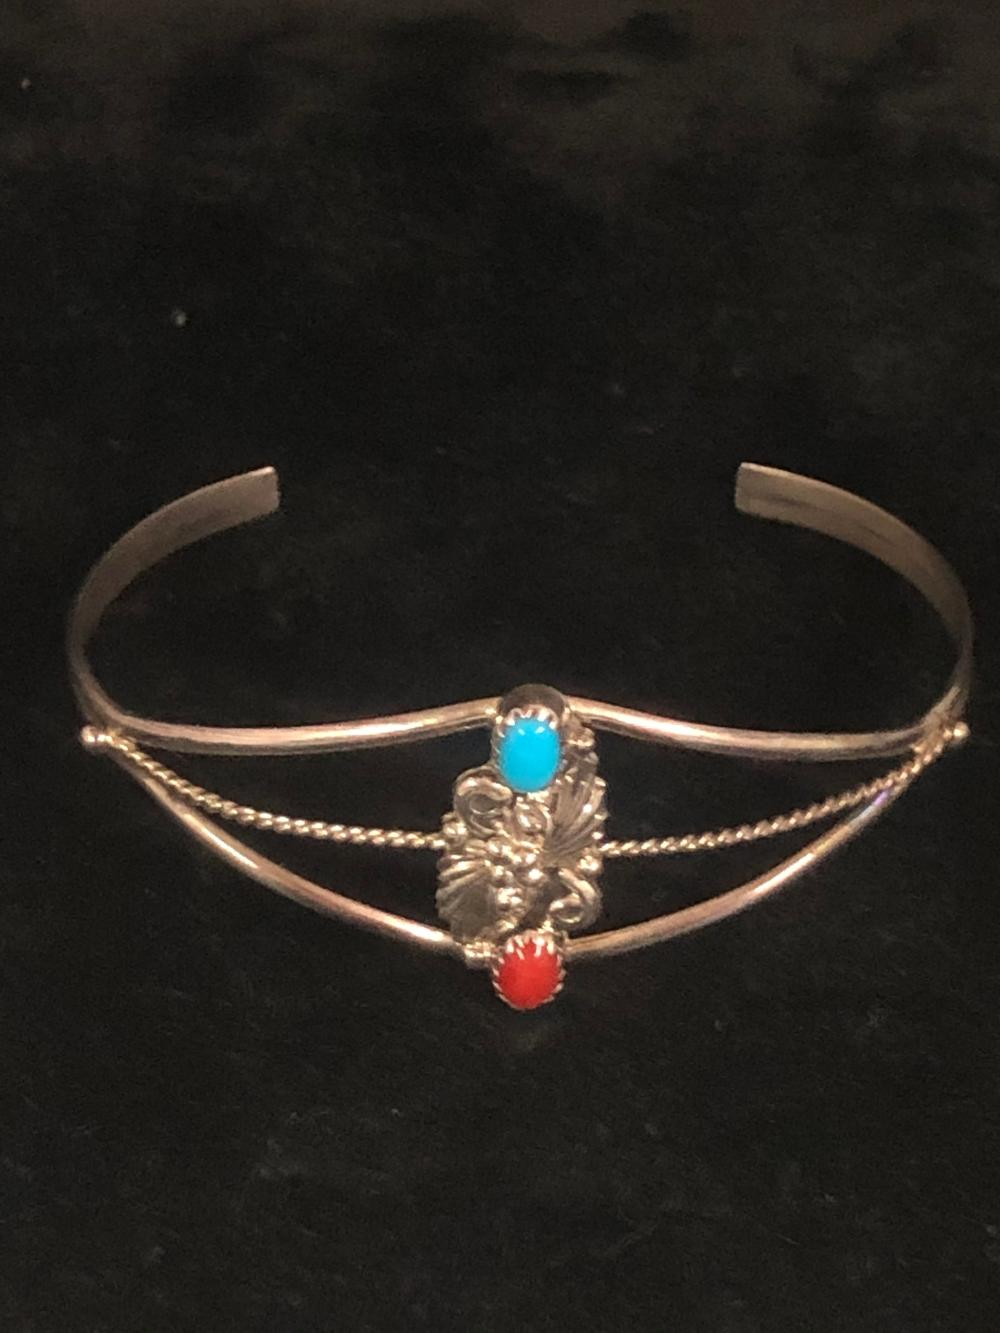 Turquoise and coral sterling silver cuff bracelet